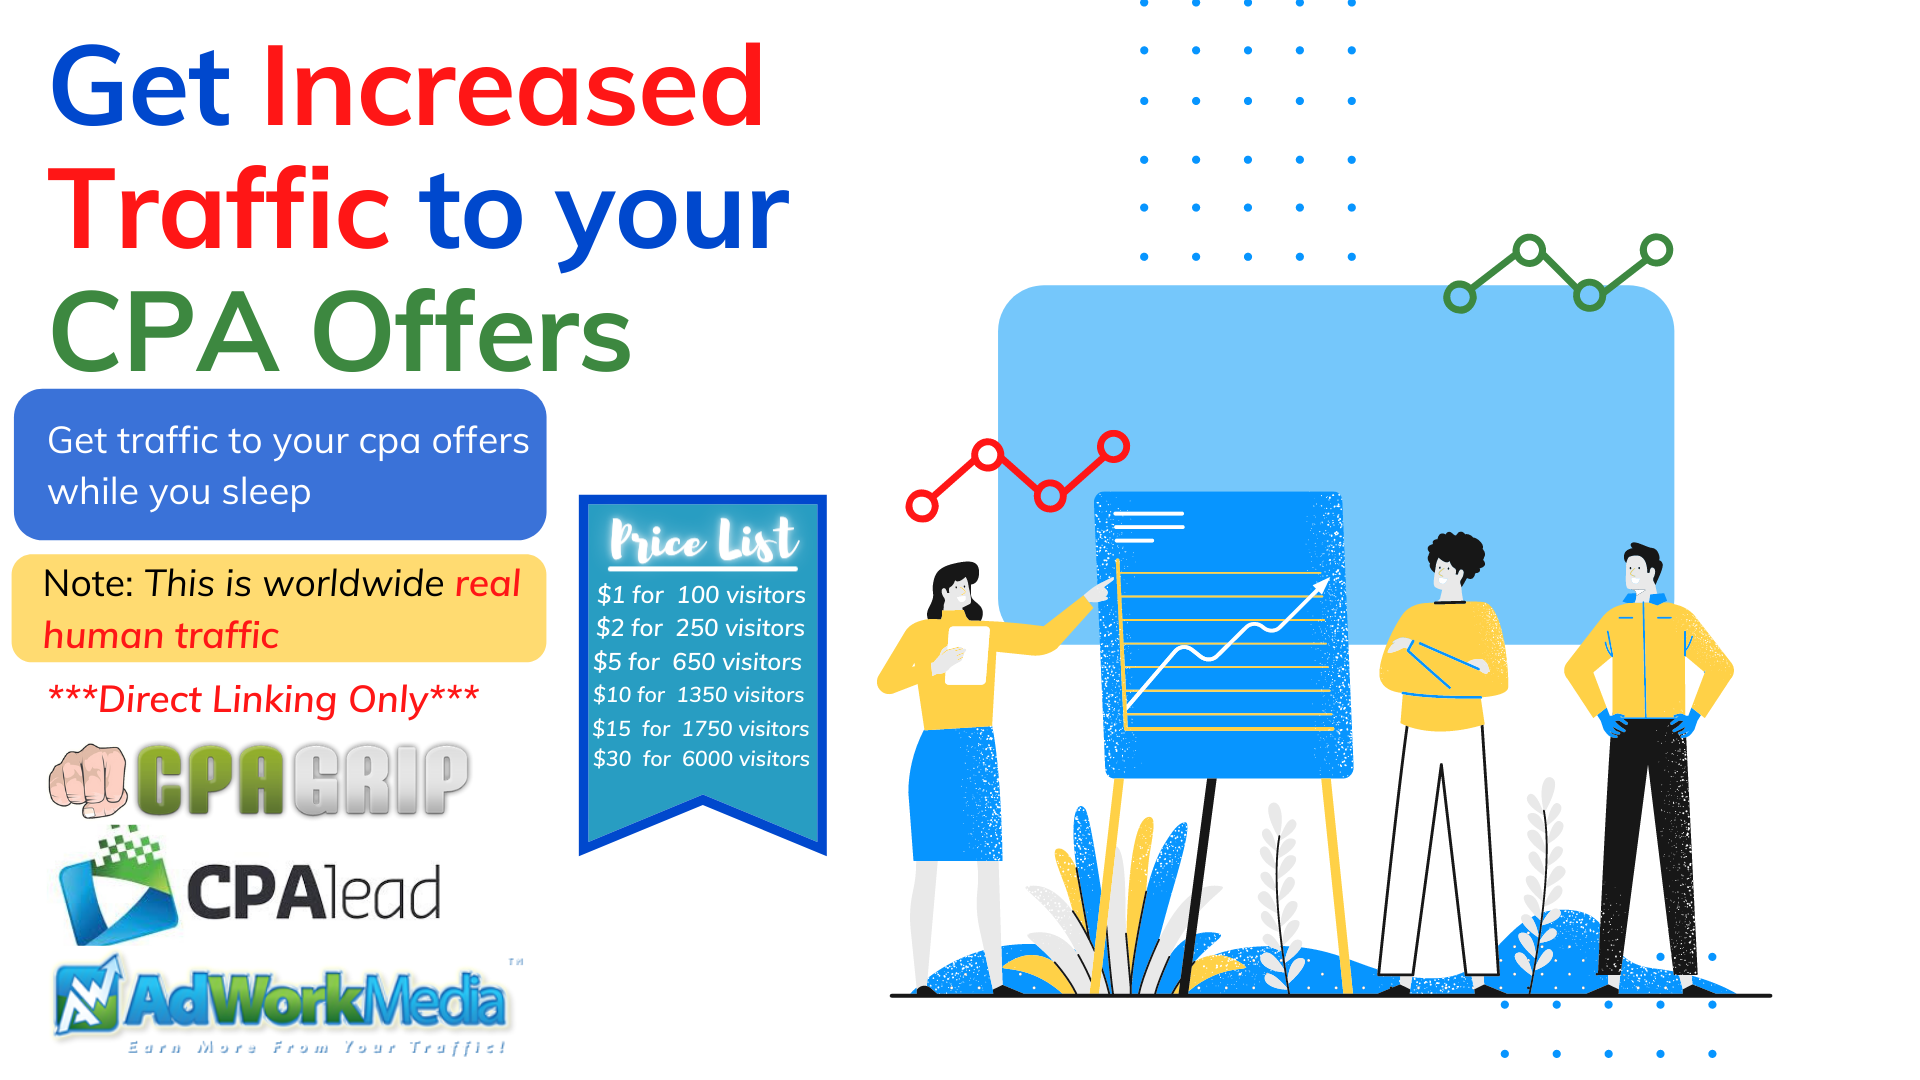 Get Increased Traffic to your CPA Offers